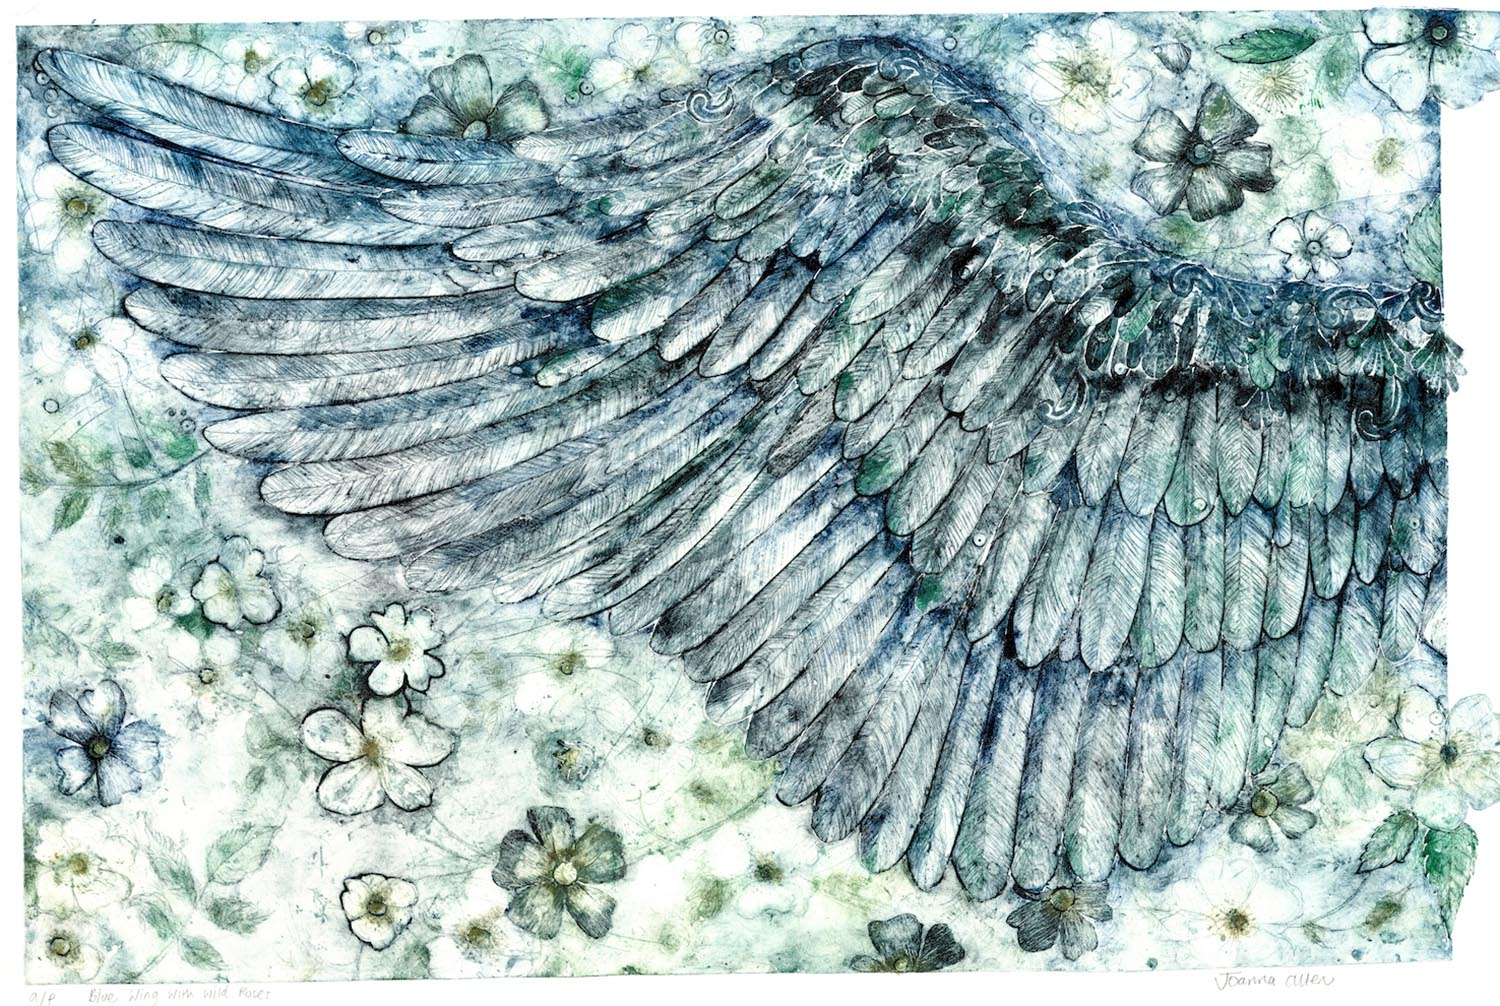 Wing Blues - handcoloured collagraph image 70x45cm white wood framed 92x69cm £475